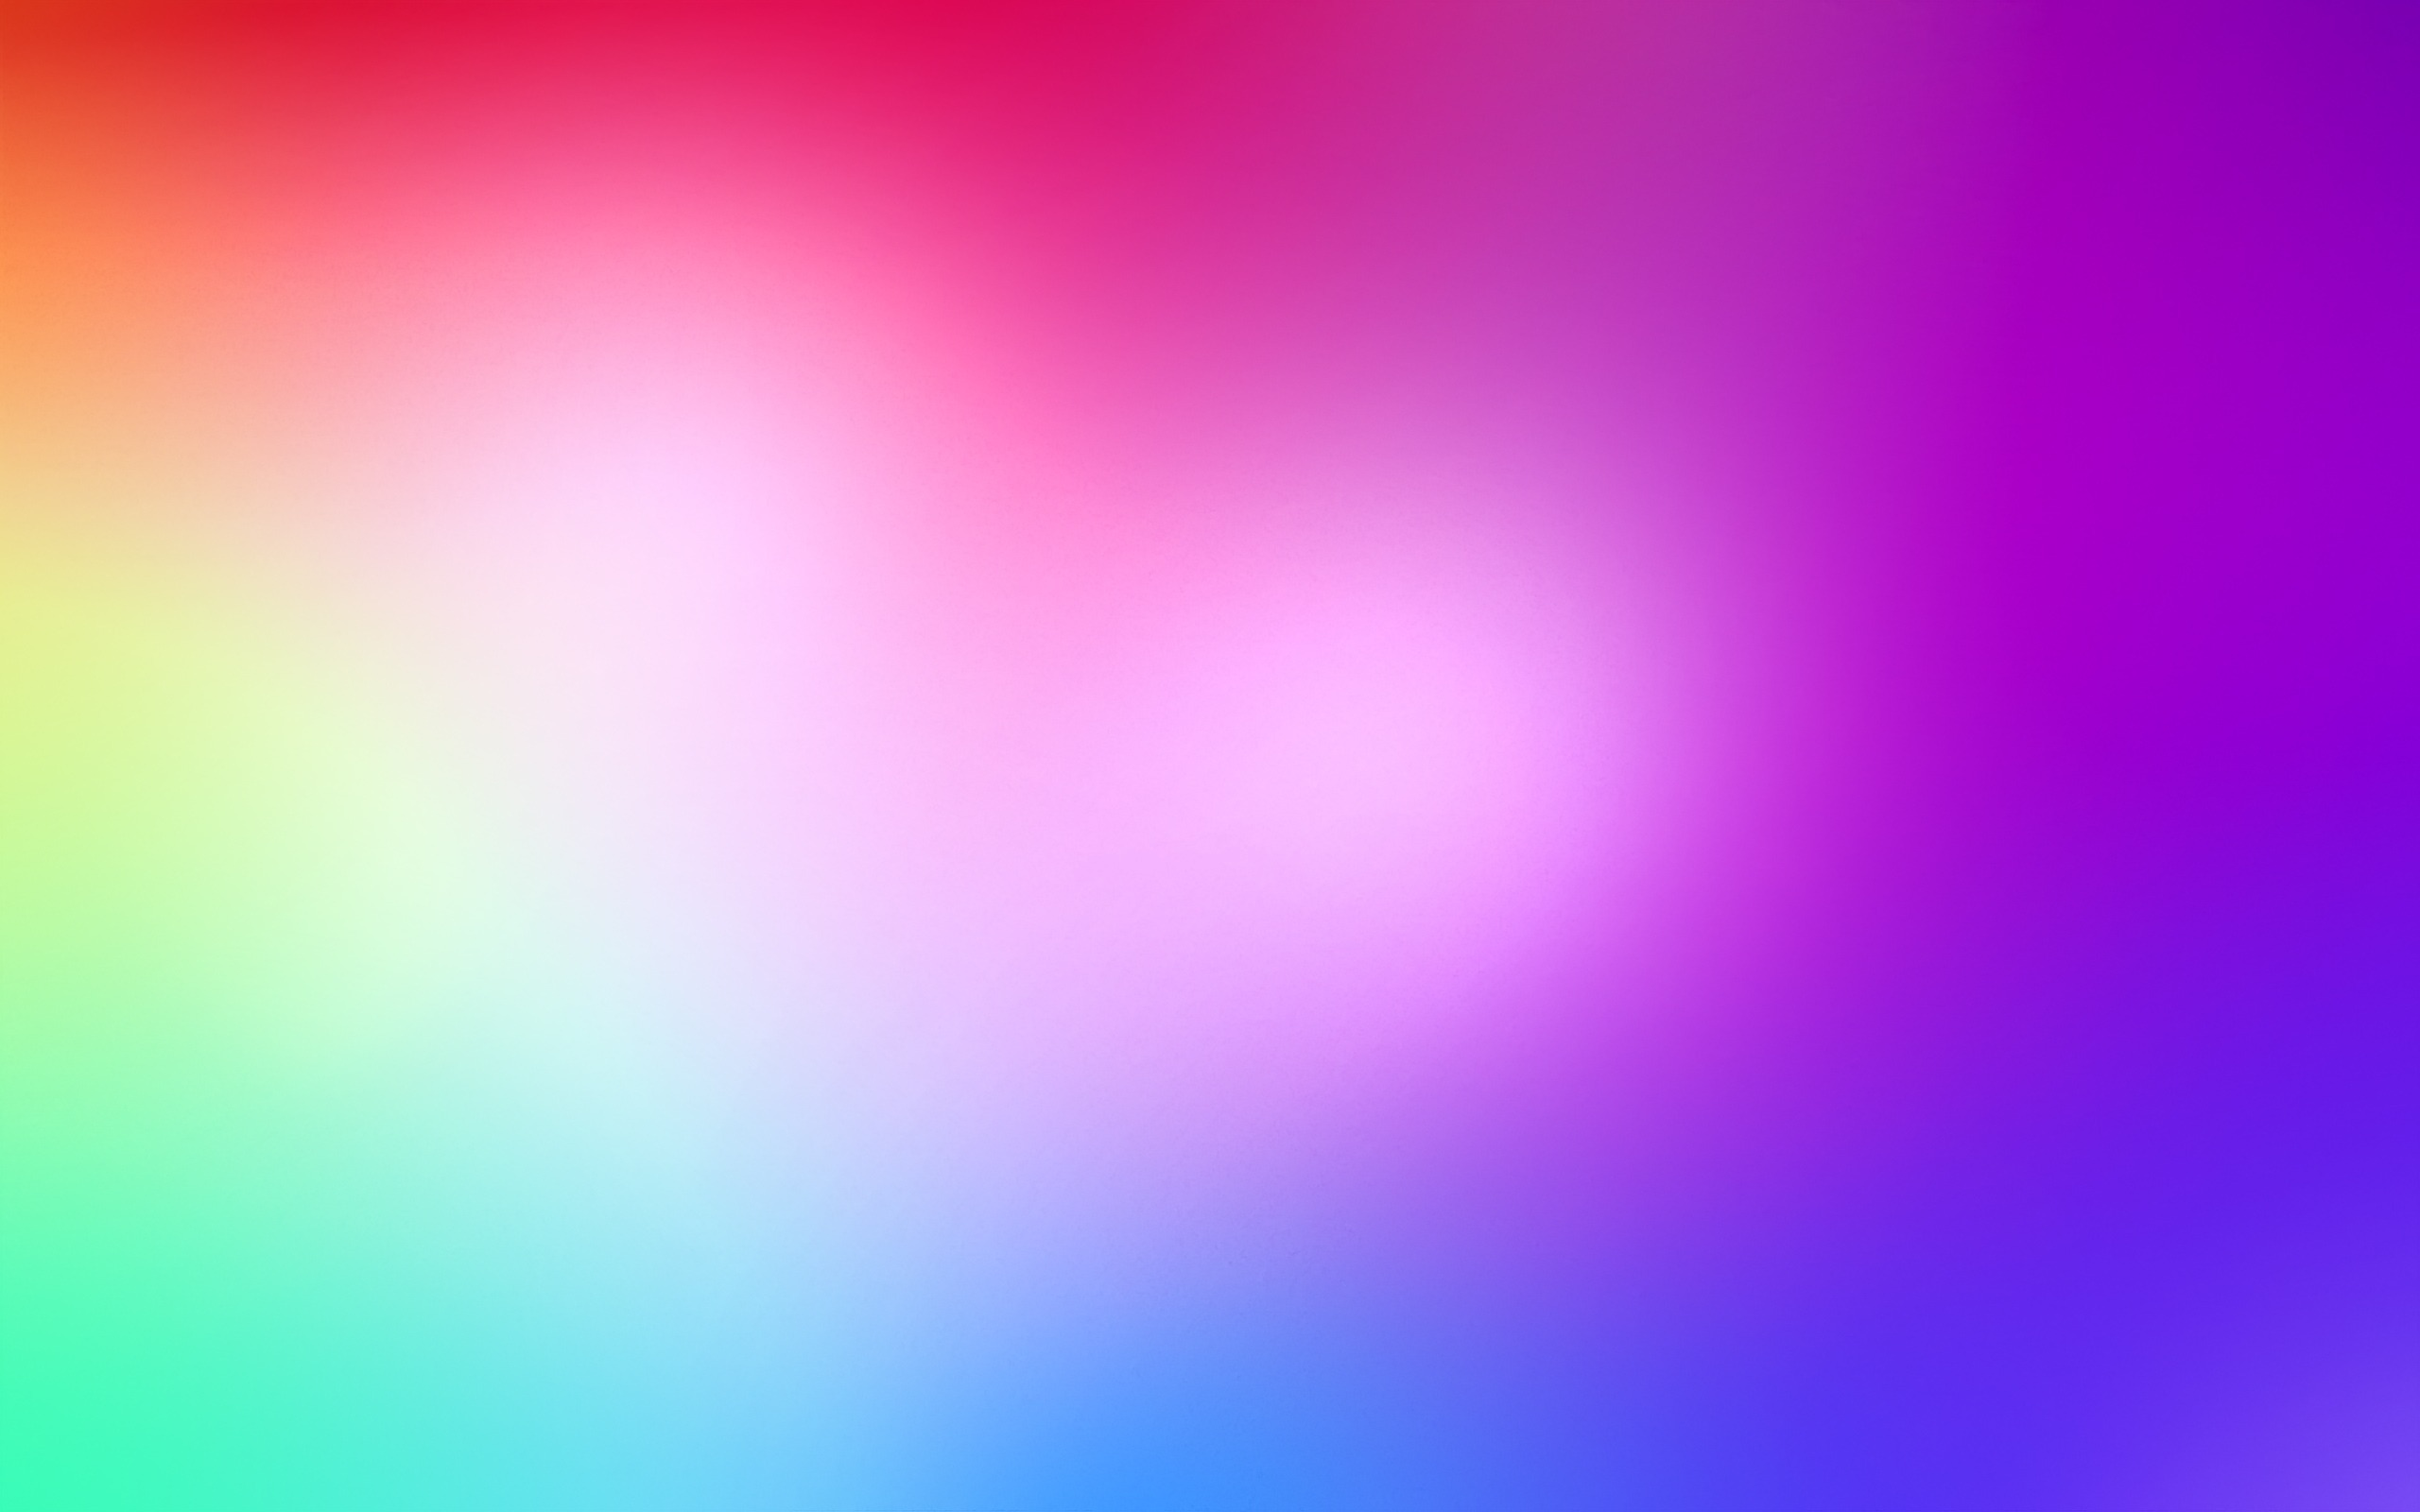 Colored Backgrounds Wallpaper